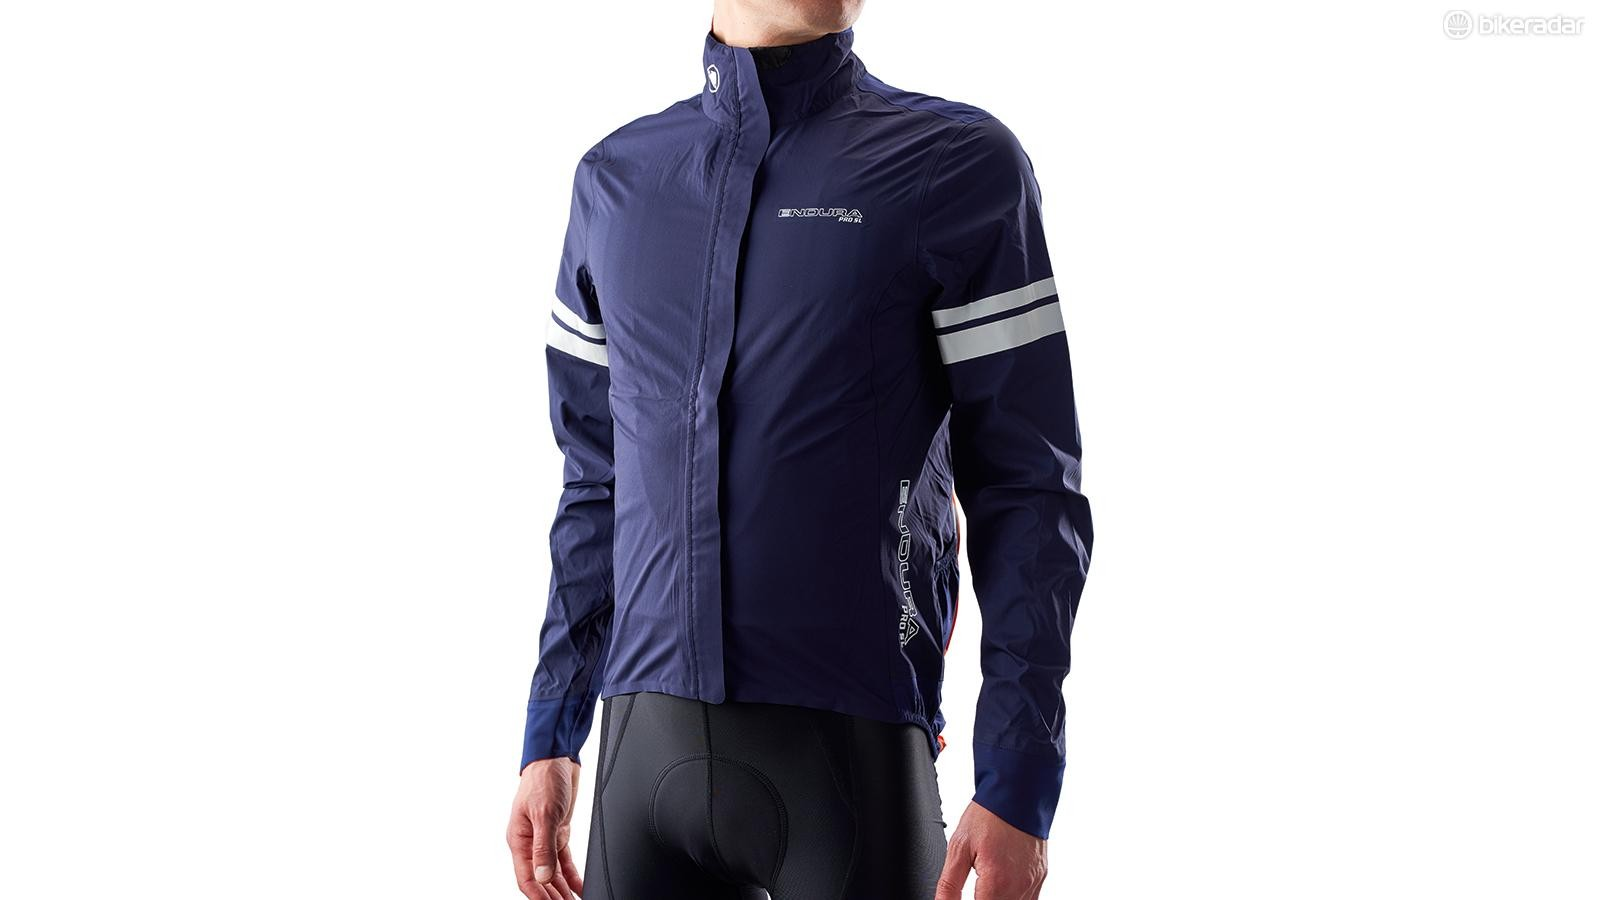 We love Endura's PRO SL shell jacket